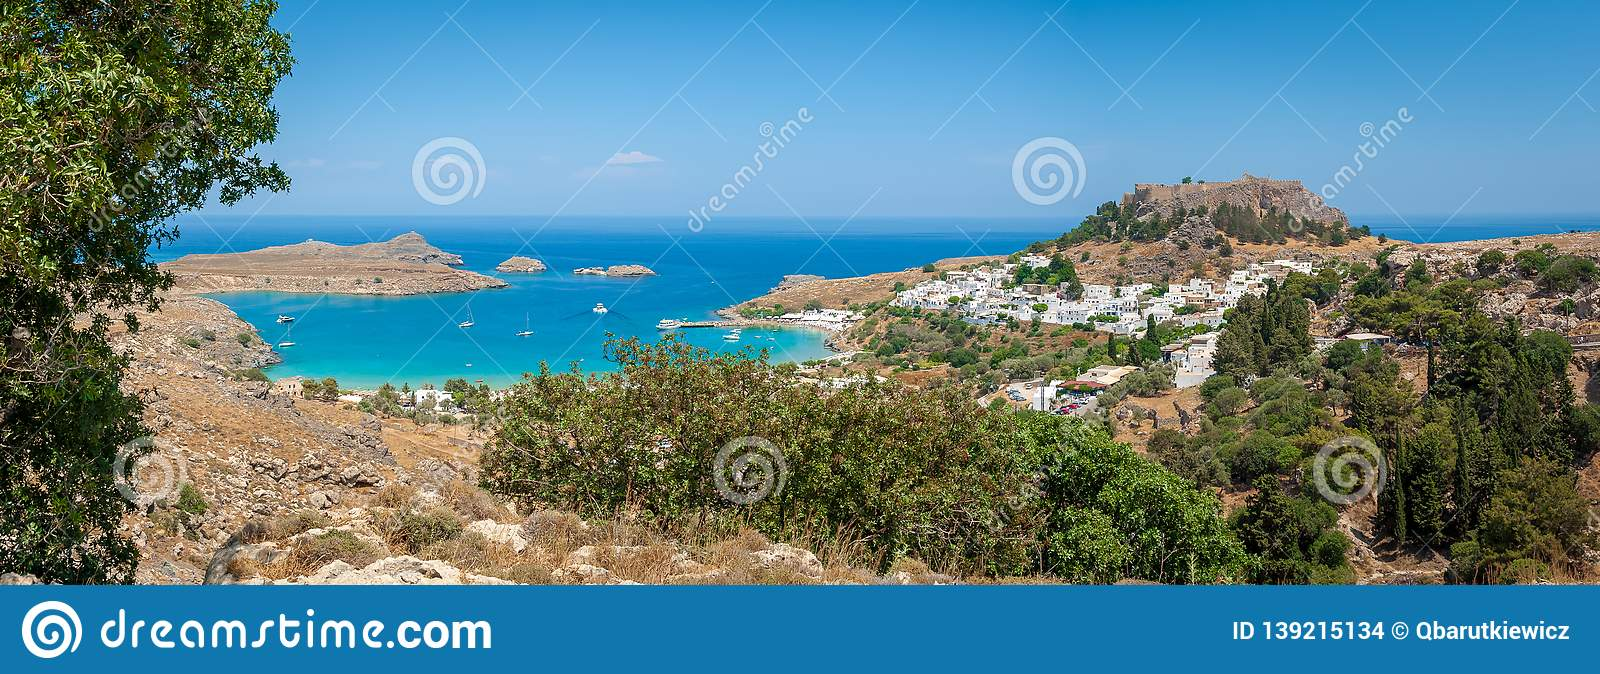 Panoramic view over Lindos village with ruins of ancient Acropolis. Island of Rhodes. Greece. Europe